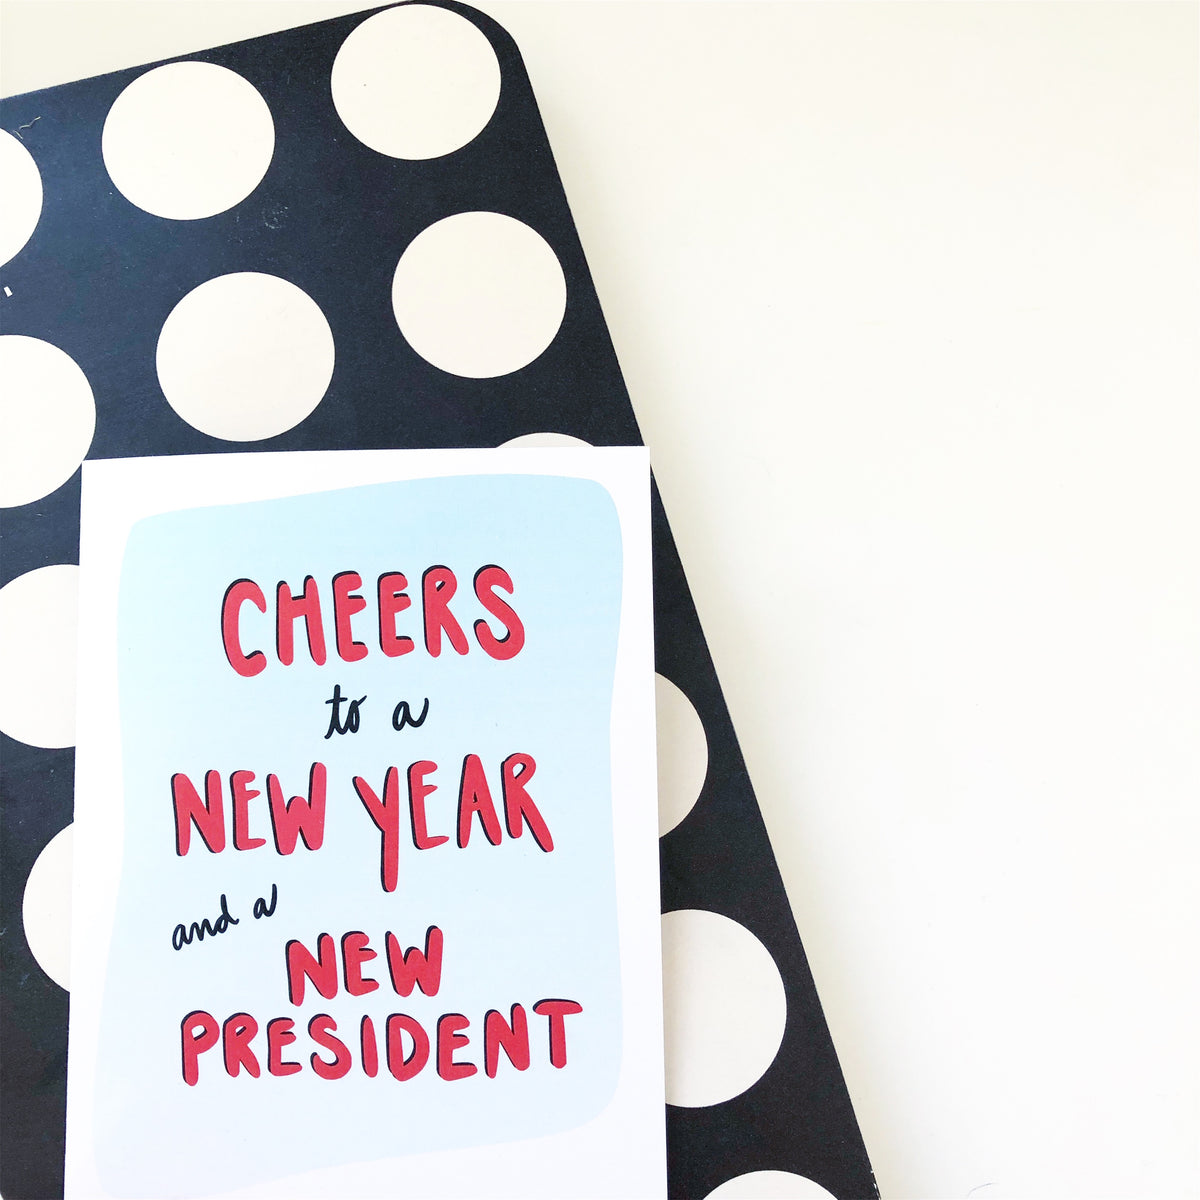 Cheers to a New Year and a New President